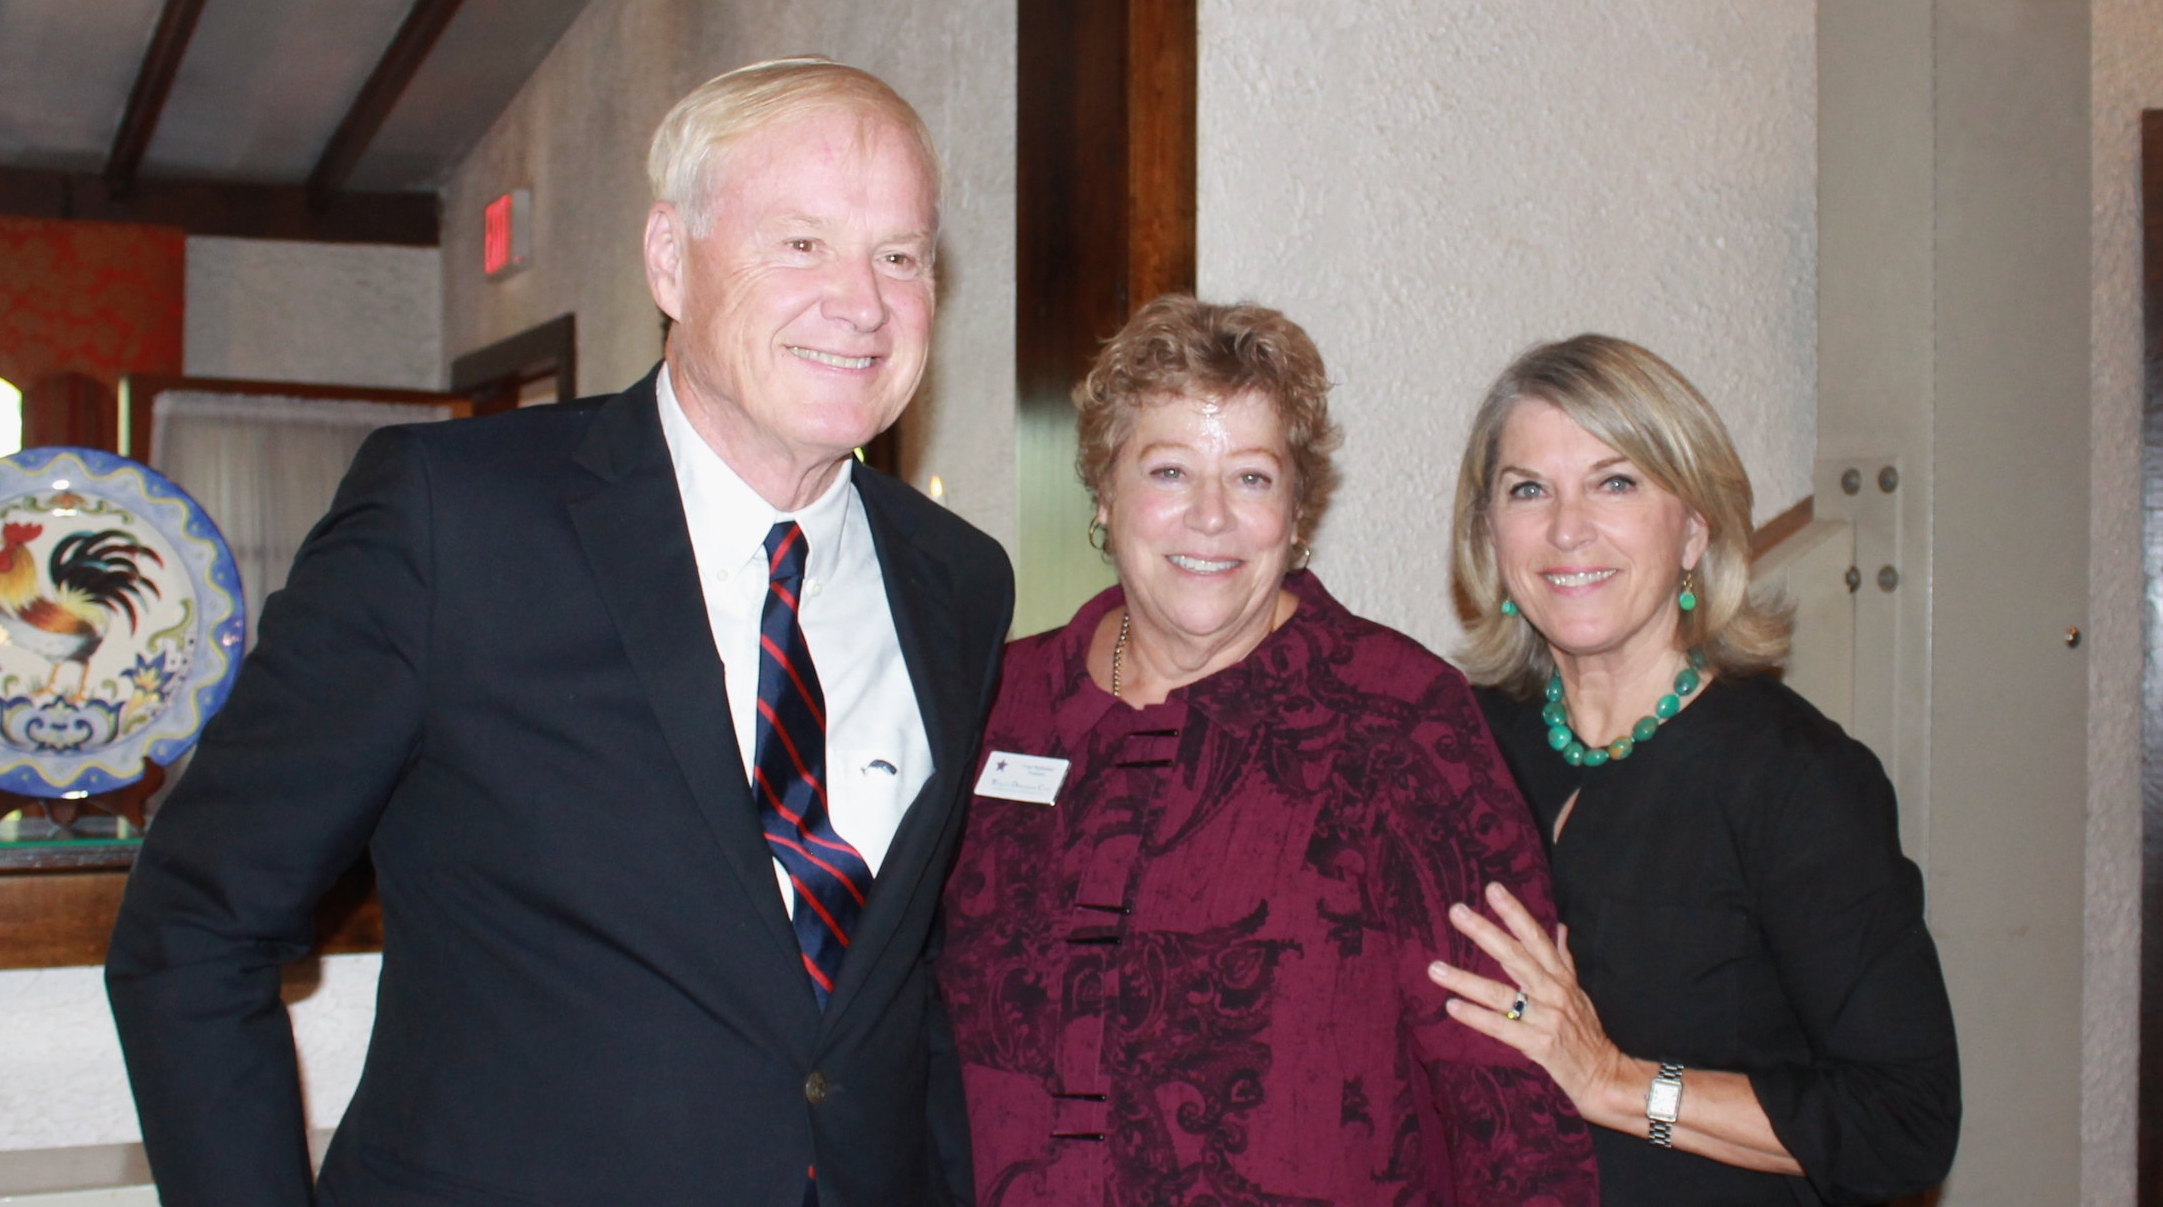 Photo Album FLCKR  (left-right) Chris Matthews, Fran Rothstein, Kathleen Matthews